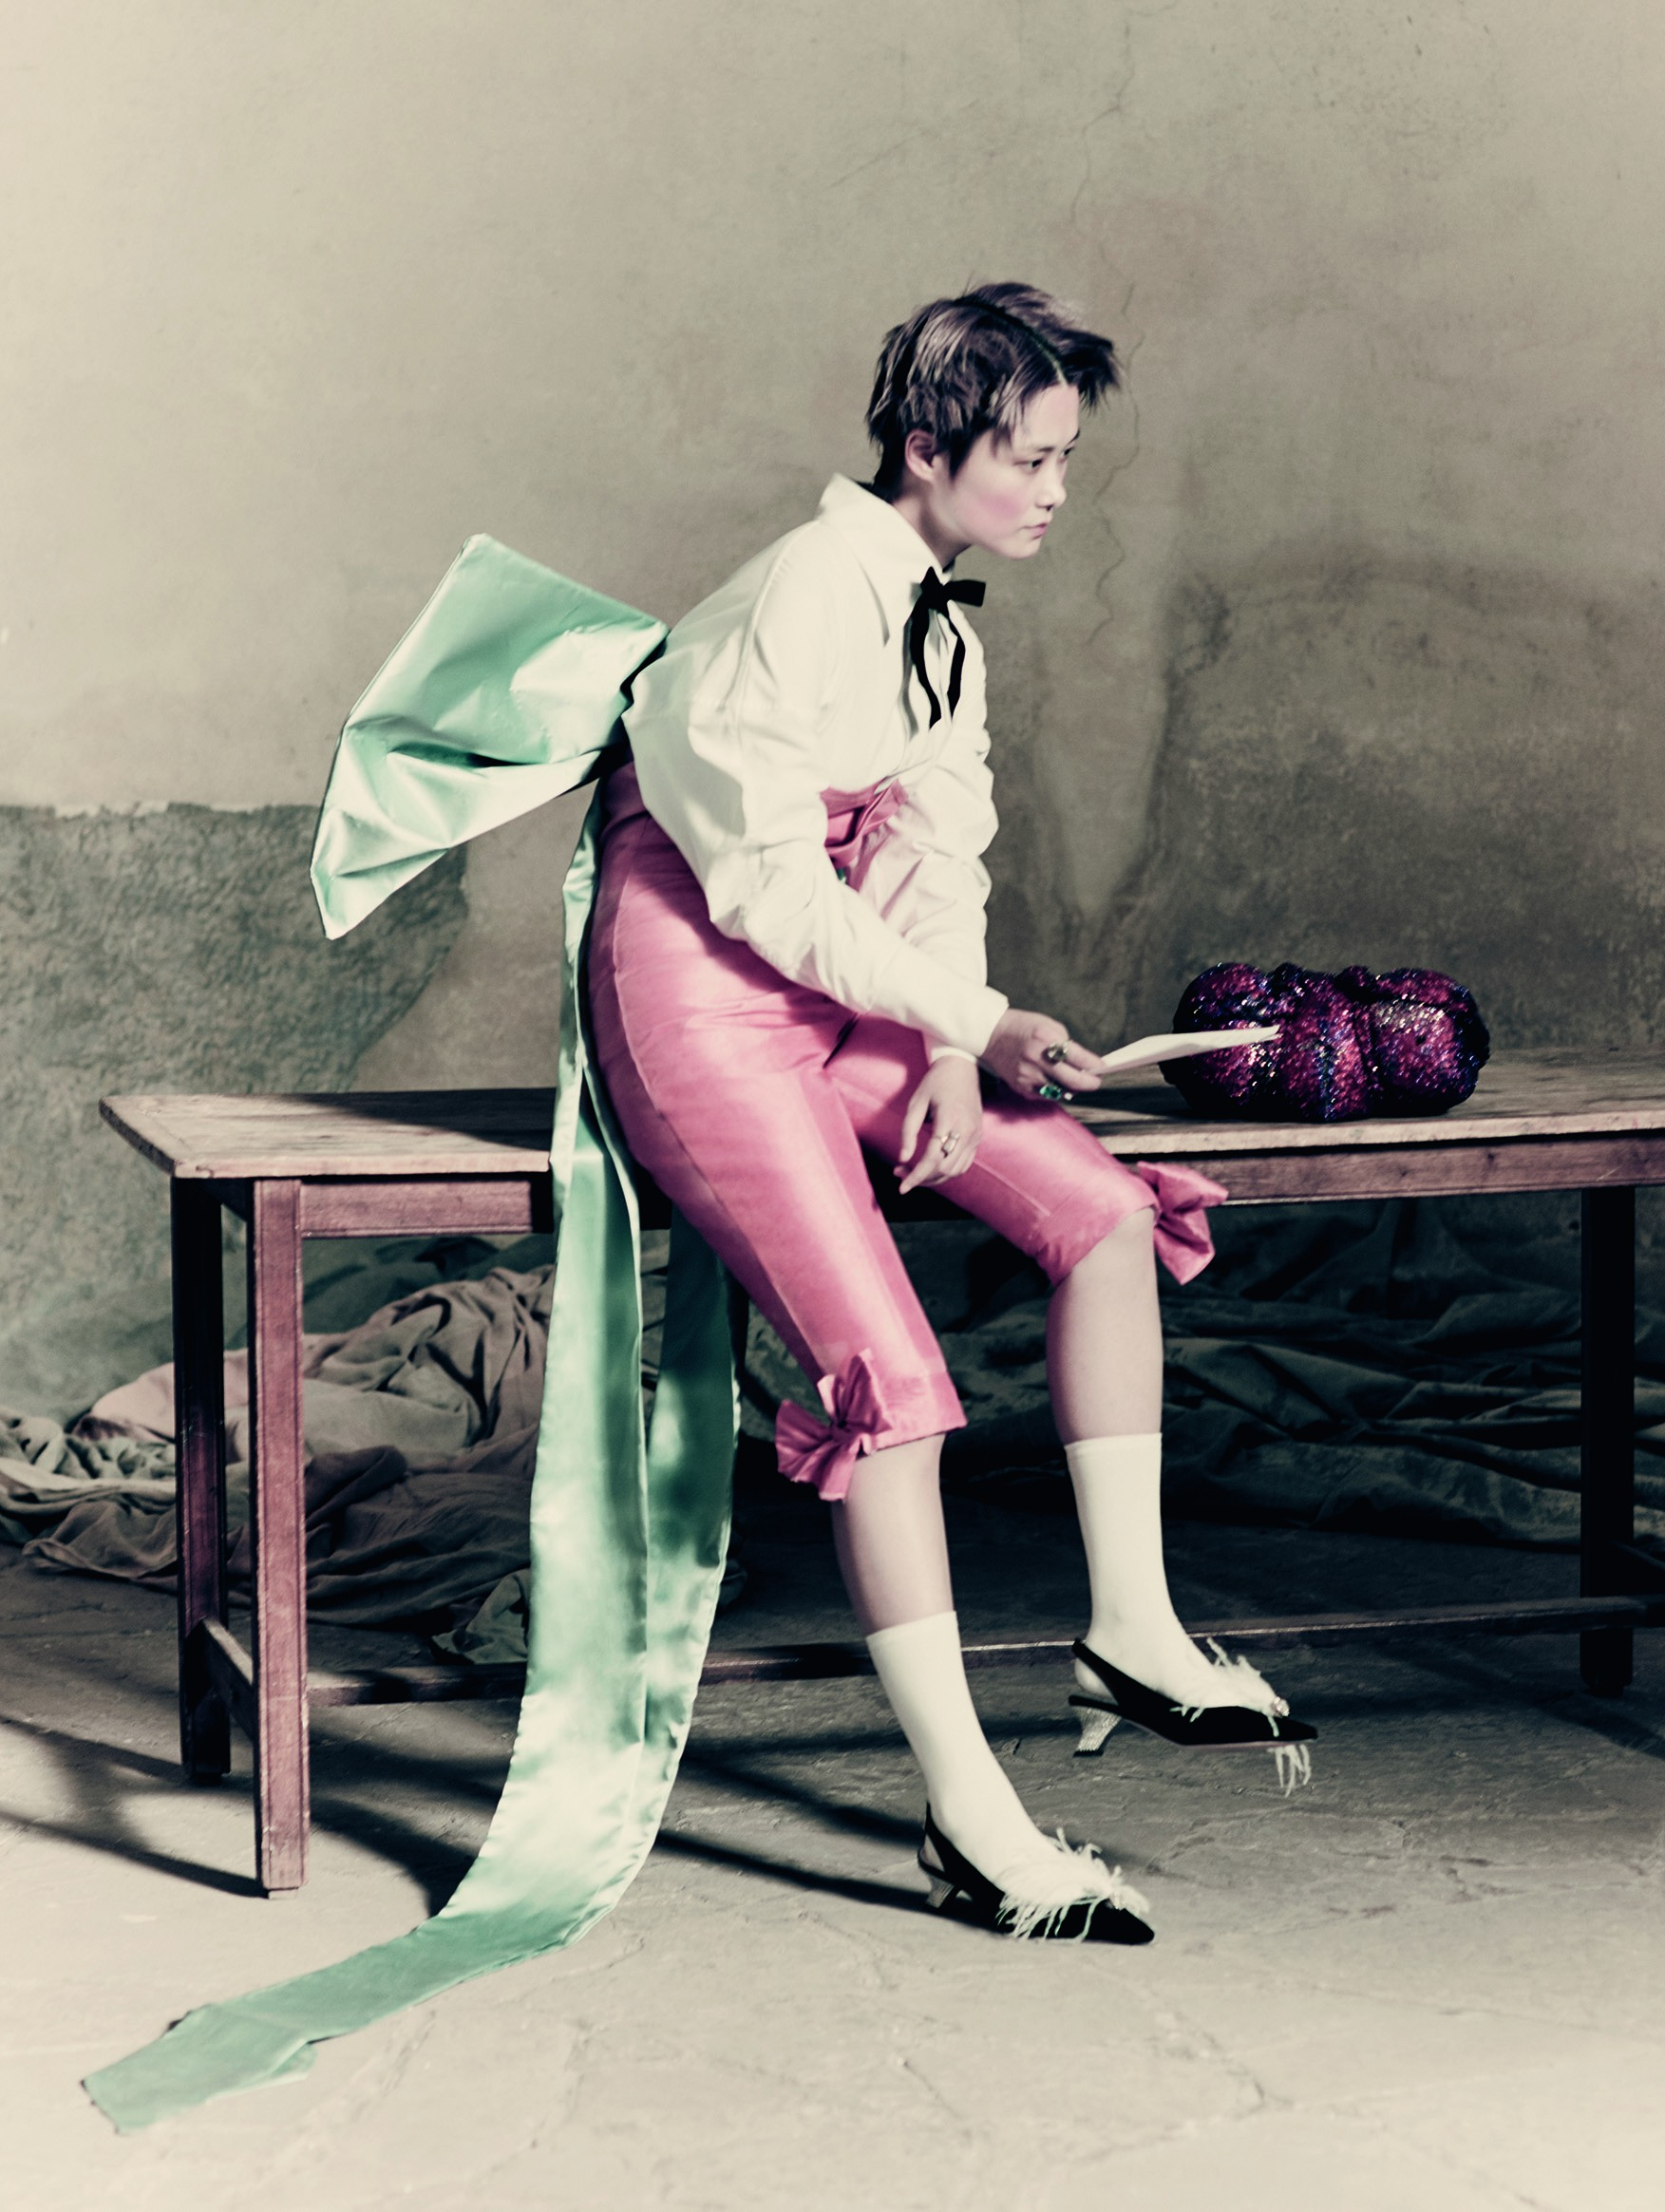 Chris Lee (Foto: Paolo Roversi)